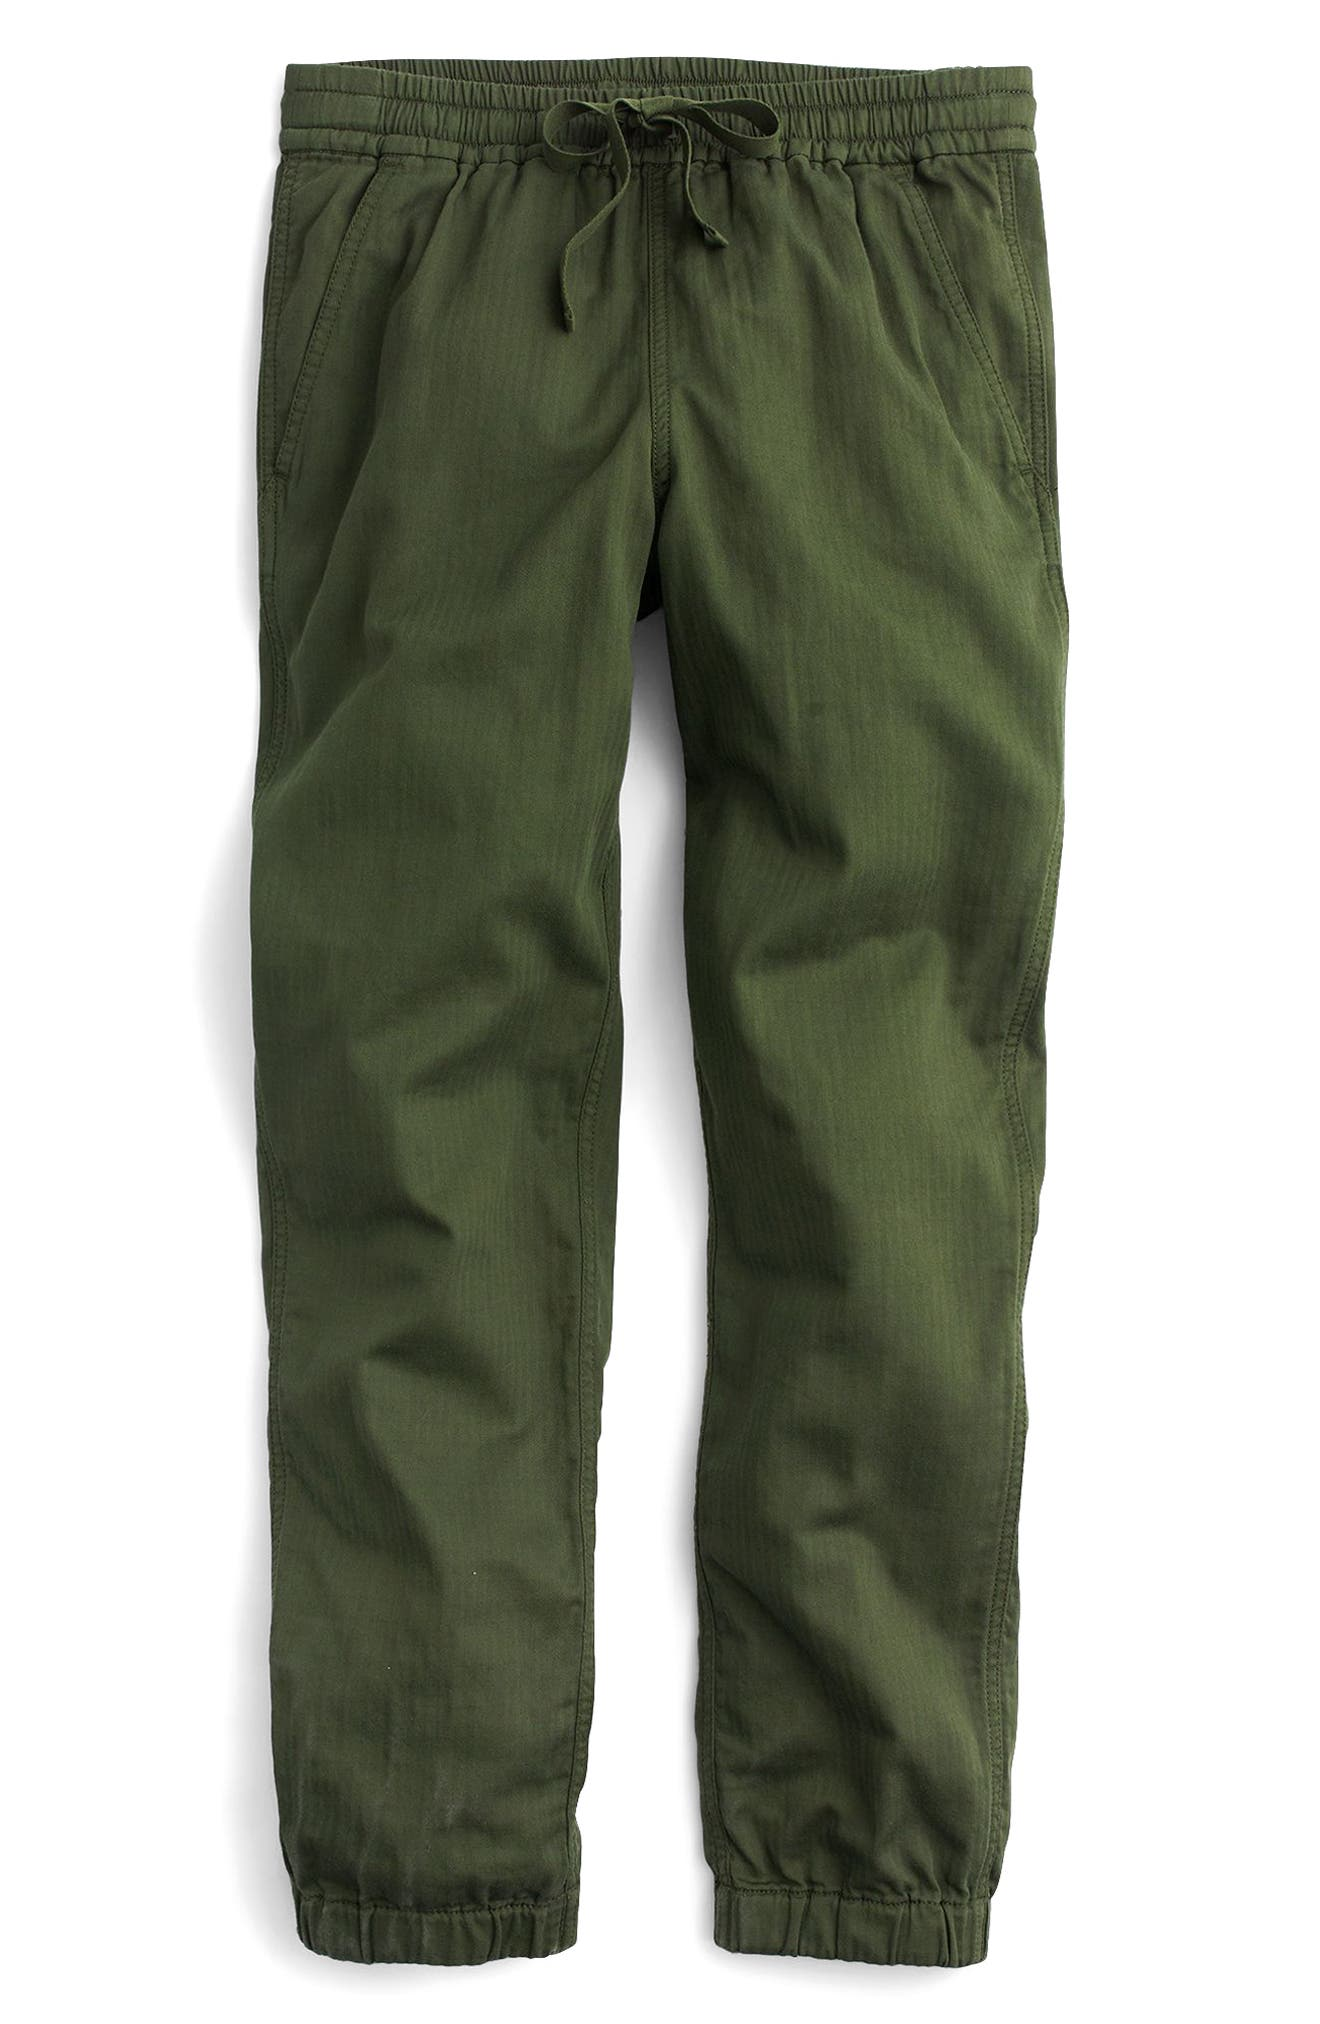 Galicia Pull-On Cargo Pants,                             Alternate thumbnail 3, color,                             300